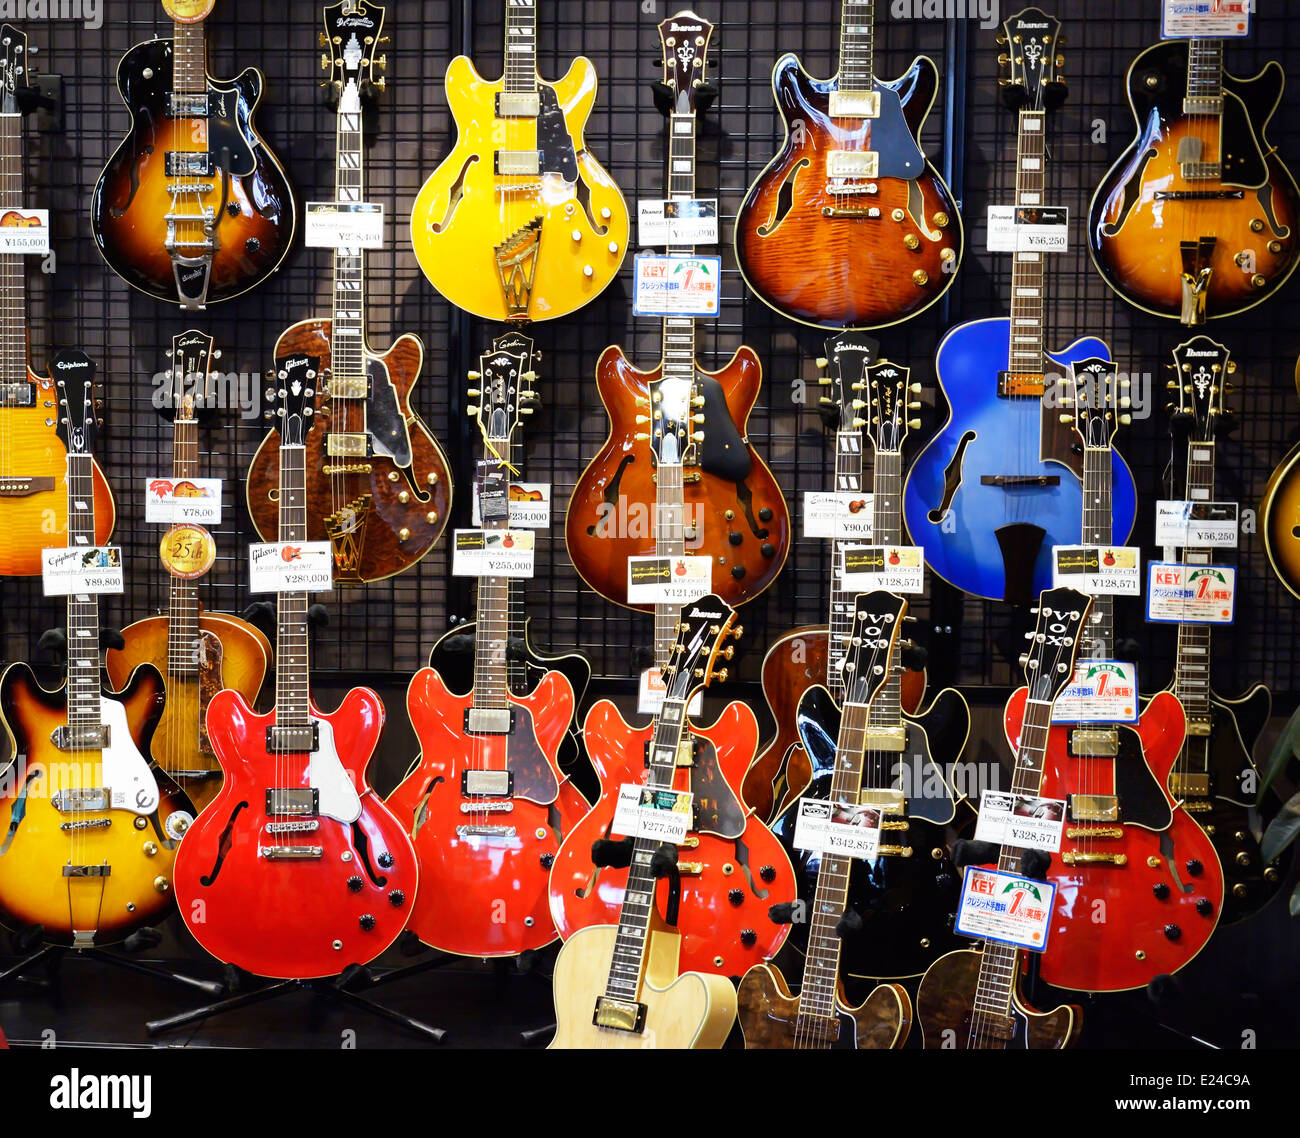 Semi-acoustic hollow-body electric guitars on display in a music store in Tokyo, Japan. - Stock Image